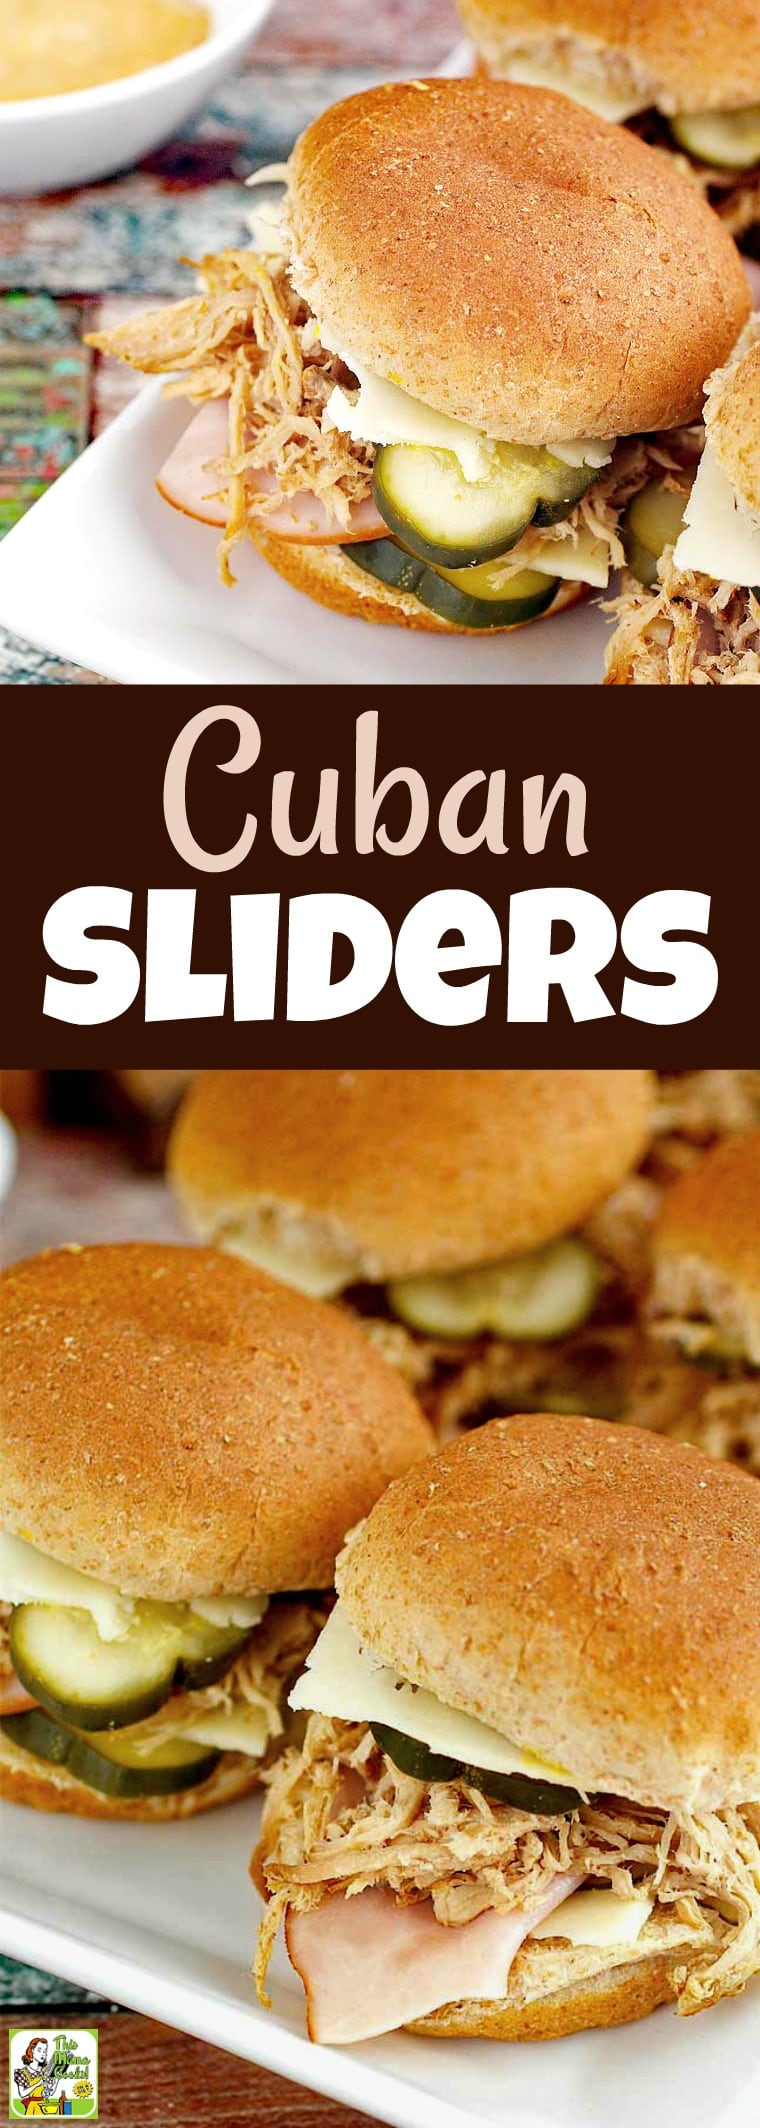 Make these Cuban Sliders for a party! These mini Cuban sandwiches are made with slow cooker pulled pork and traditional Cuban sandwich ingredients. #recipe #easy #recipeoftheday #healthyrecipes #glutenfree #easyrecipes #partyfood #appetizers #slowcooker #crockpot #cubansandwiches #cubansliders #sliders #cubanfood #cuban #sandwiches #pork